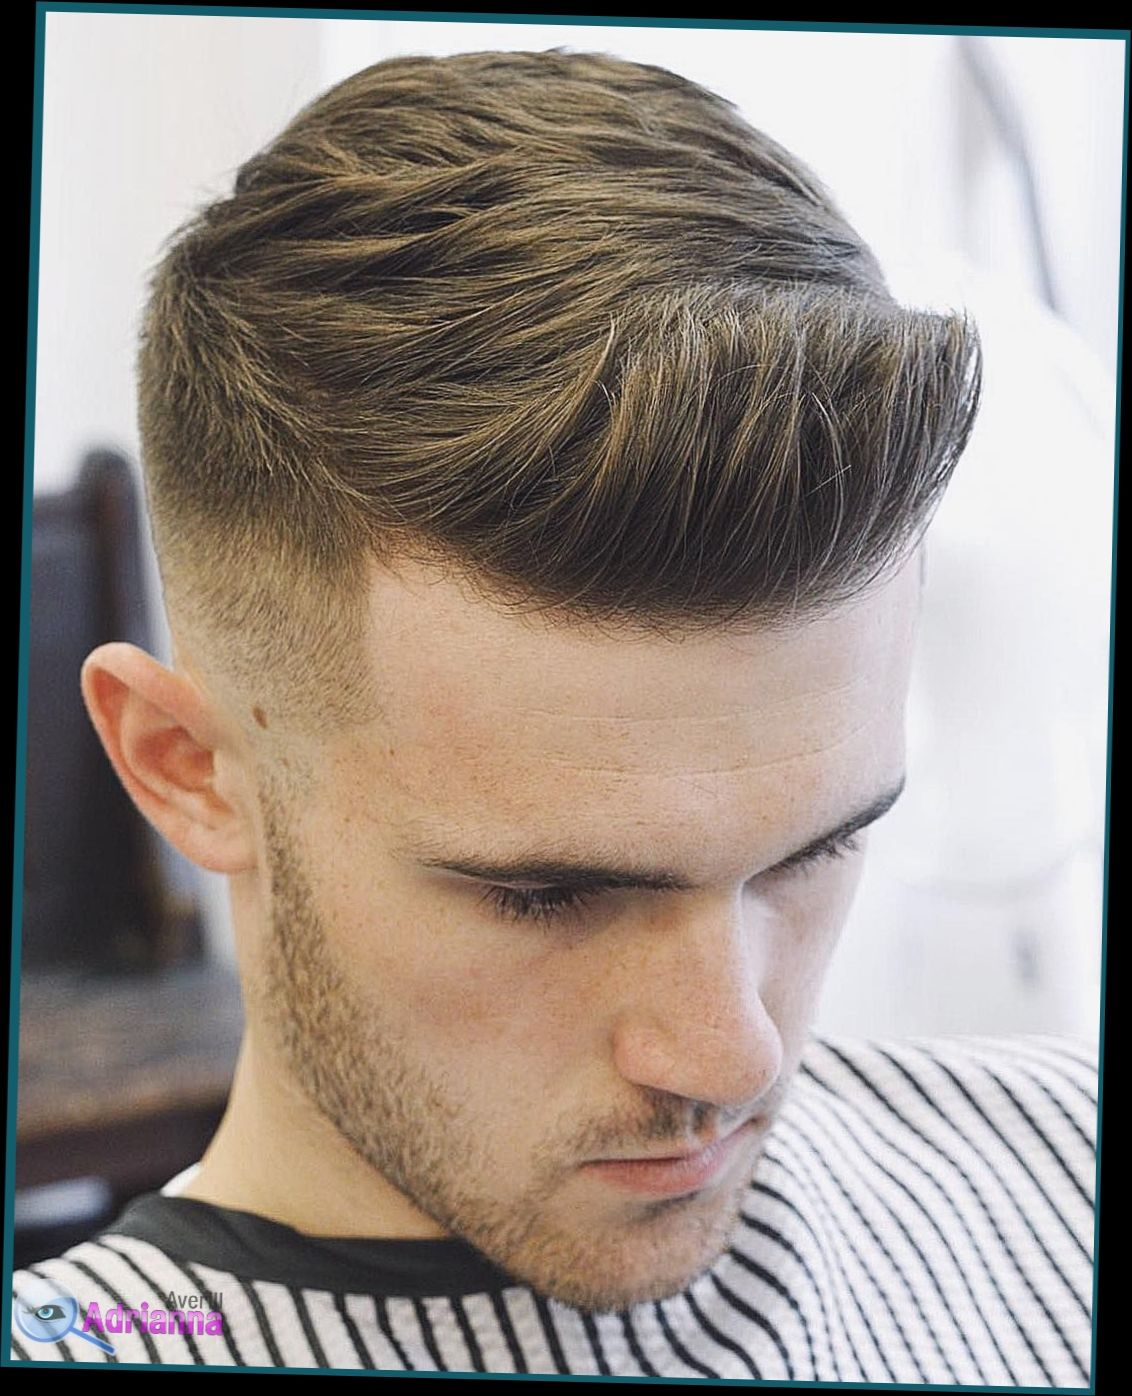 Stylish Men S Hairstyles Bestmenshairstyles Hair And Beard Styles Men Haircut Styles Beard Hairstyle